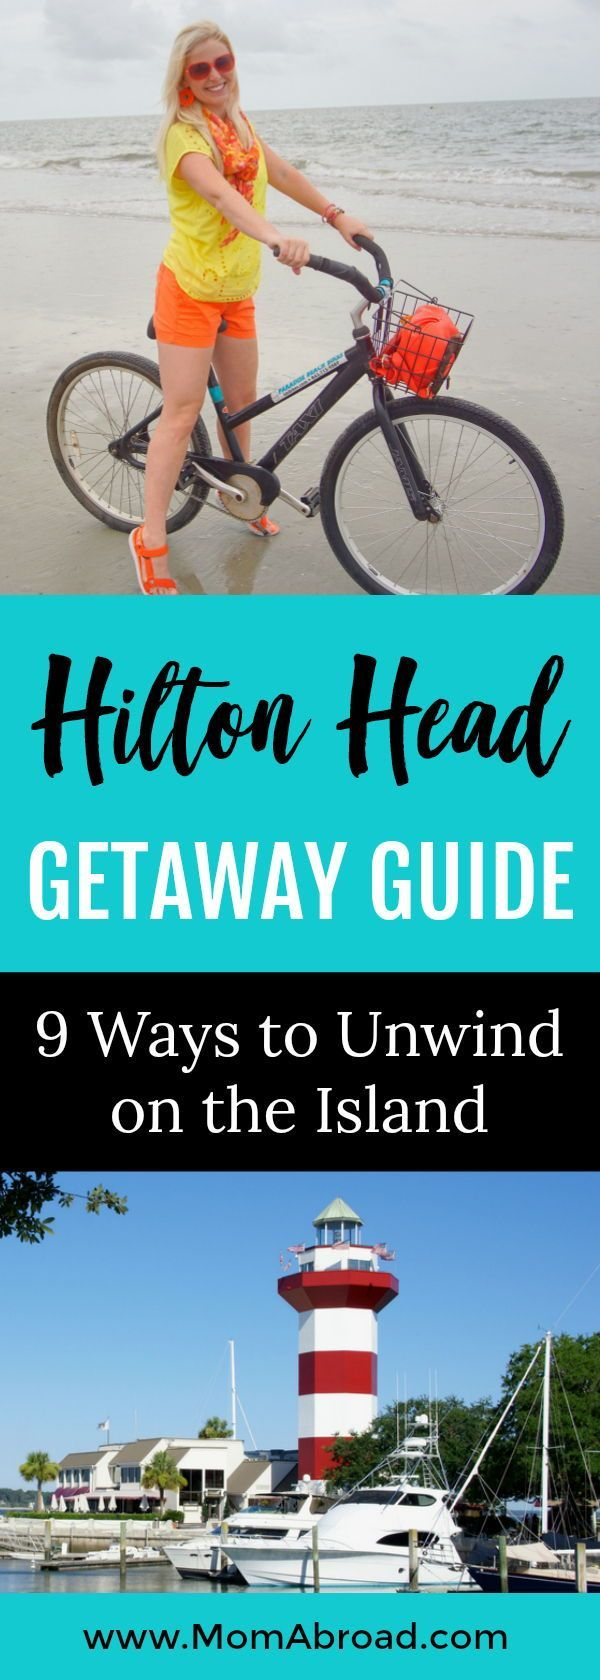 Hilton Head Getaway Guide - With miles of Atlantic windswept beaches, tranquil waterways and marshes, ample outdoor activities and a wide choice of hotel and vacation rental options, Hilton Head is an alluring vacation destination for anyone seeking to ge